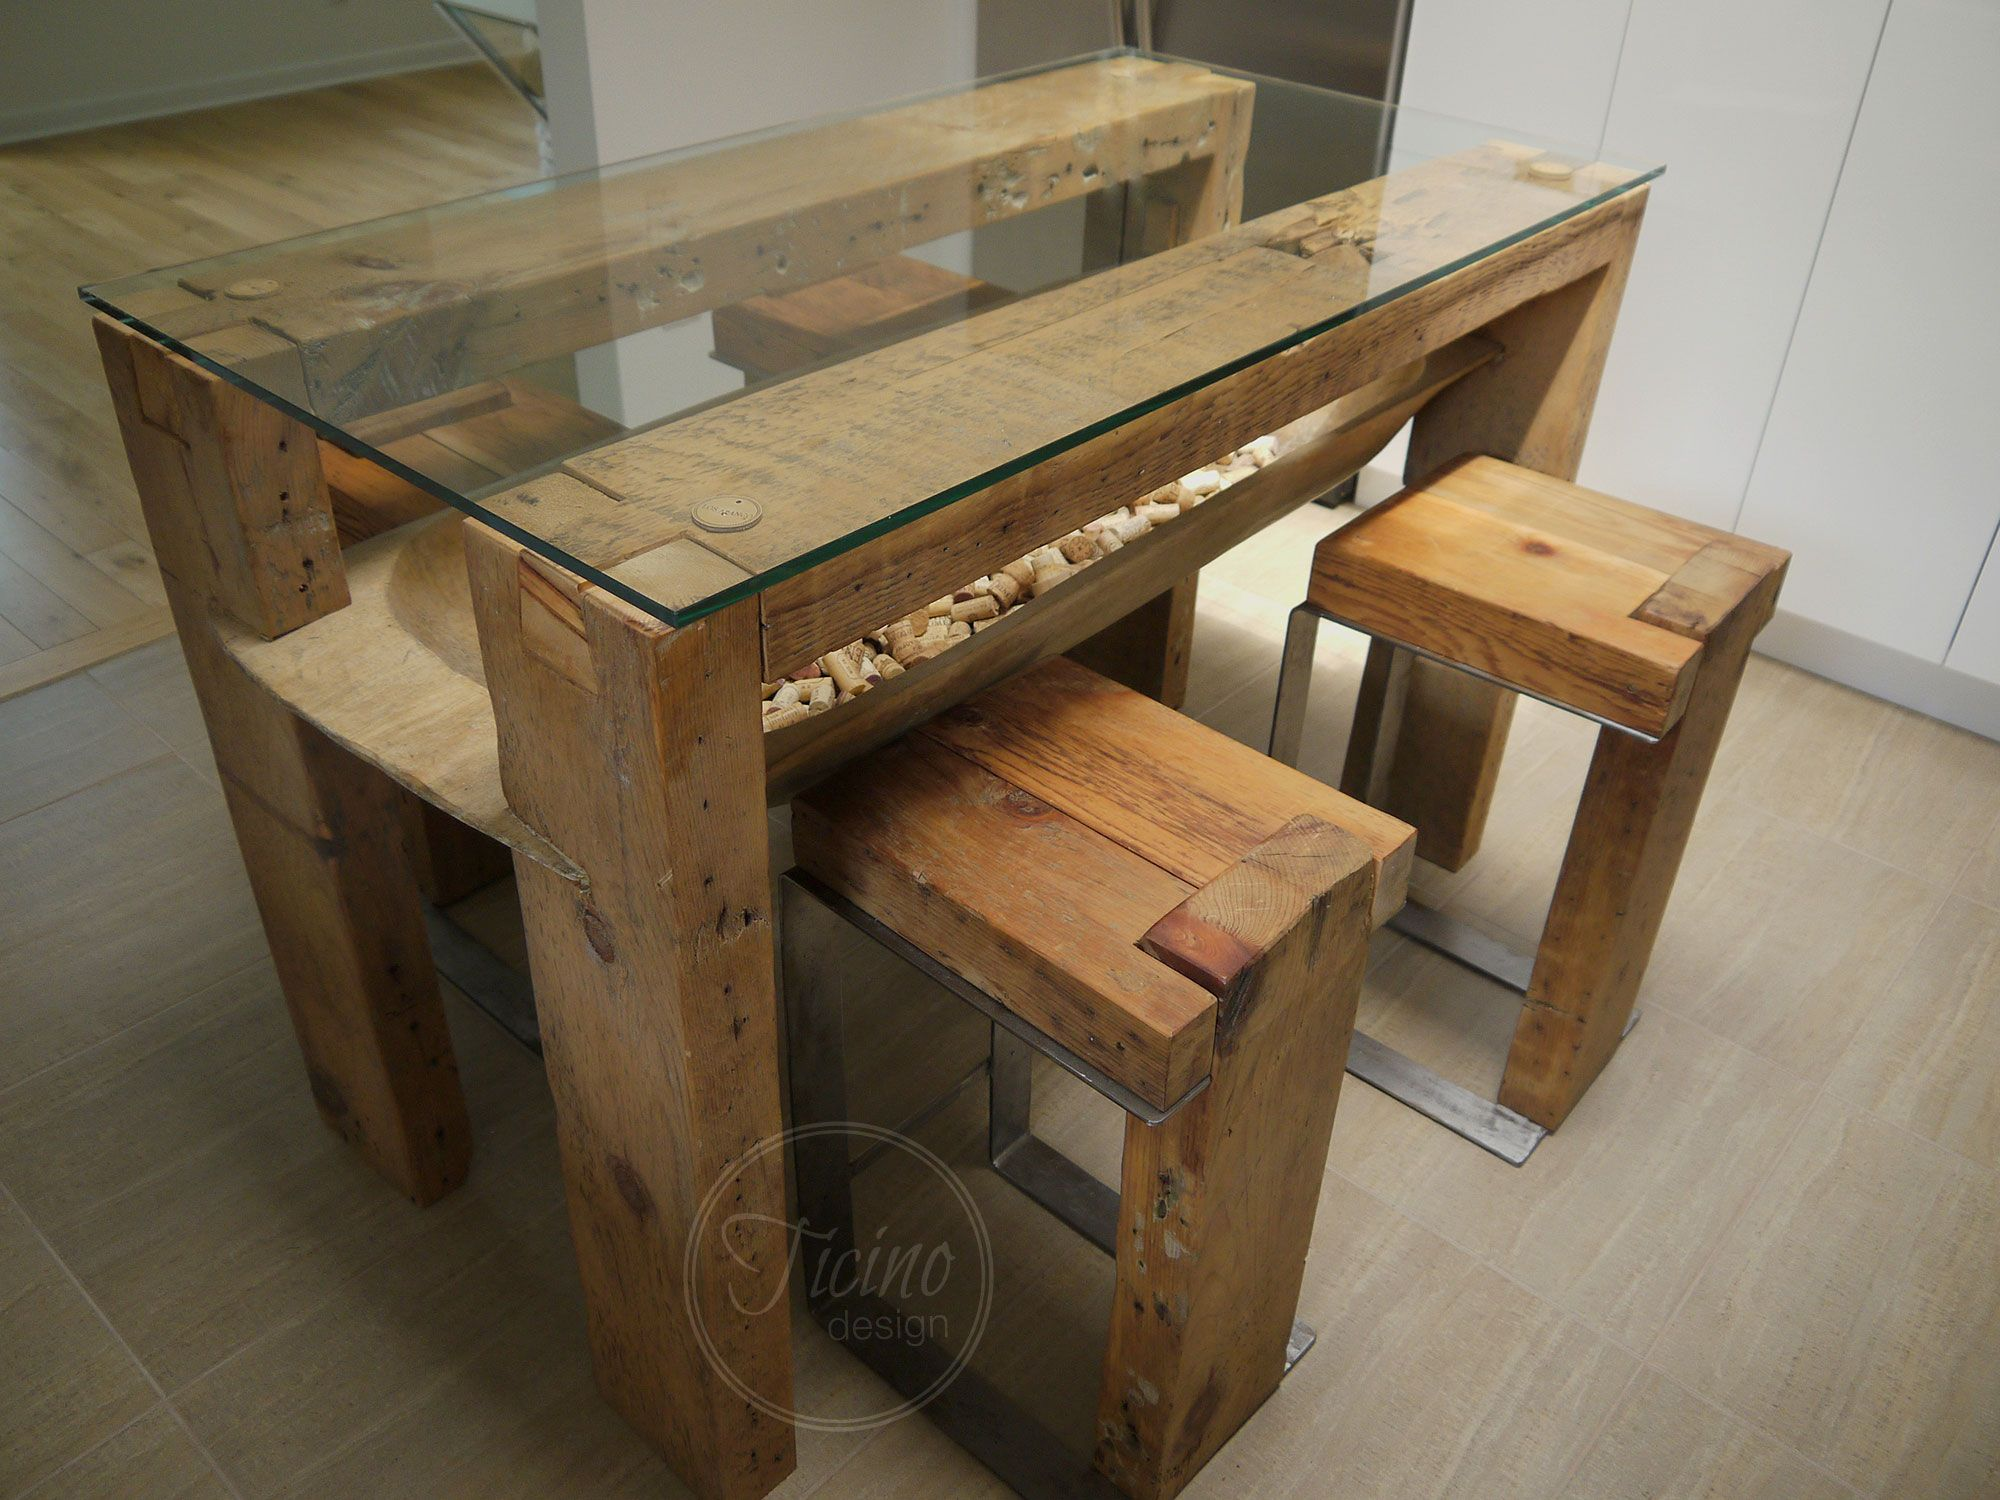 Kitchen Island Reclaimed Wood Furniture Dining Table Glass Top Dinning Table Kitchen Table Breakfast Bar Rustic Table Breakfast Table Modern Rustic Furniture Rustic Furniture Kitchen Table Wood